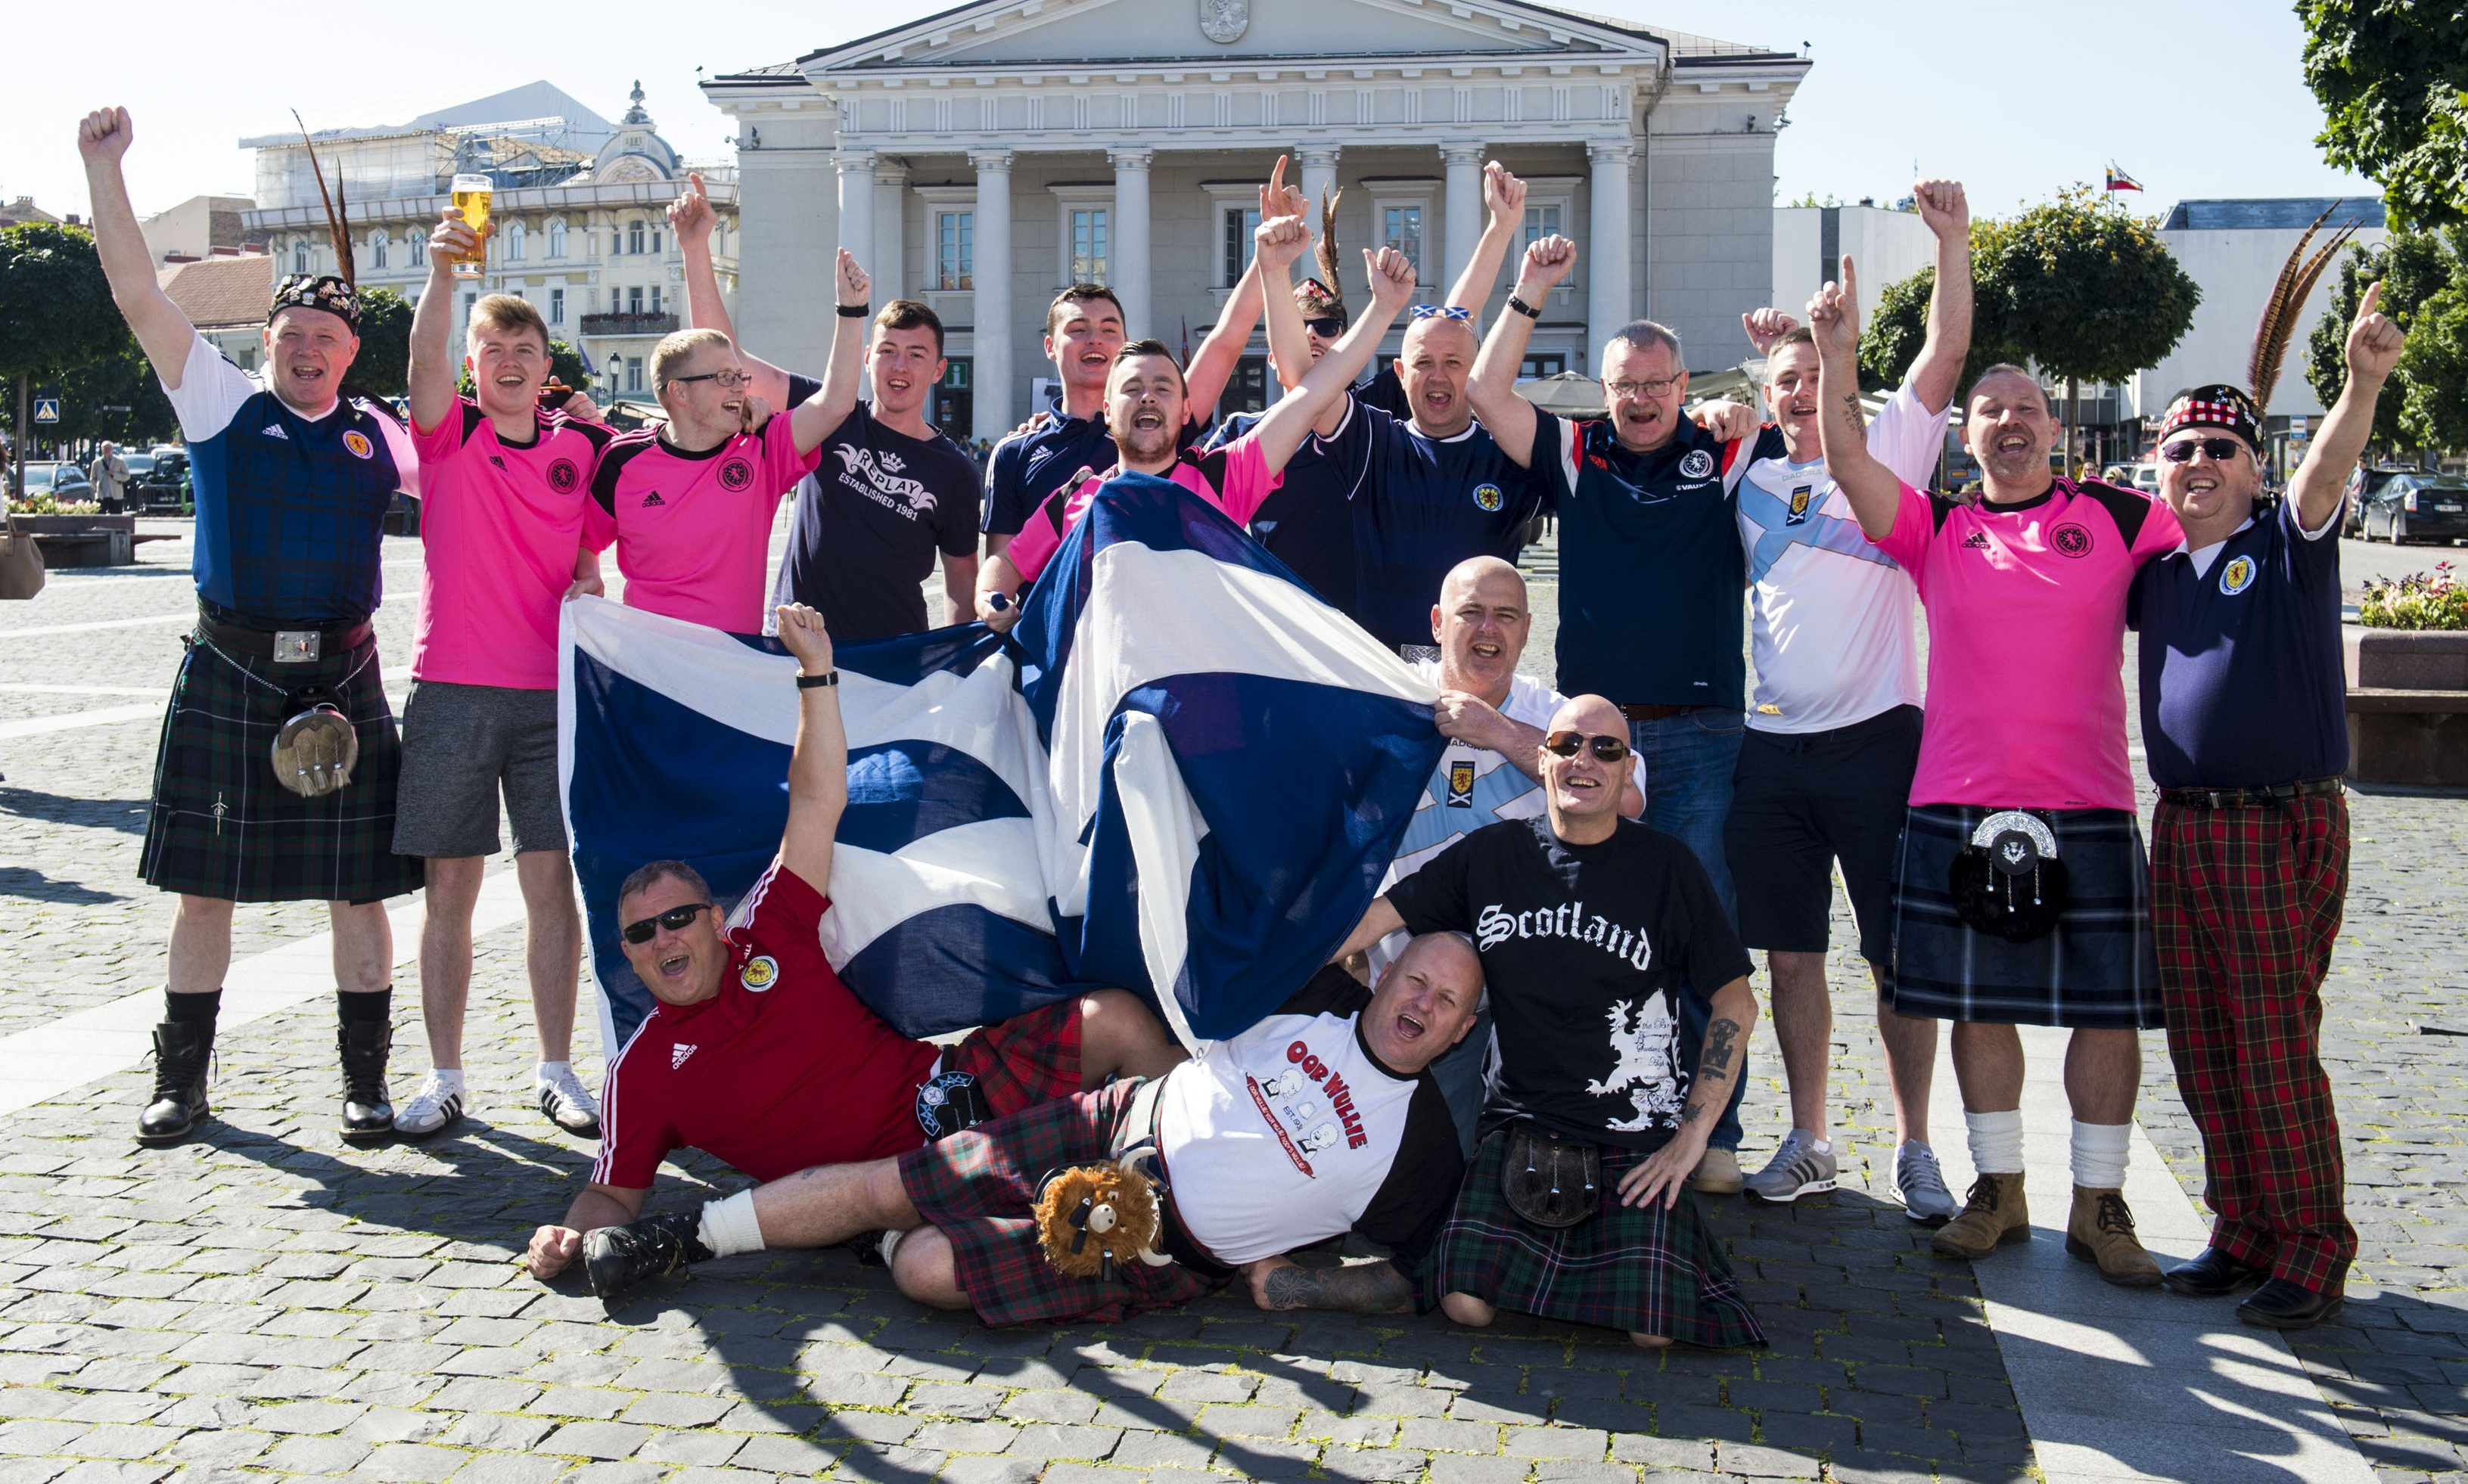 Scotland fans in good spirits out and about in Vilnius.